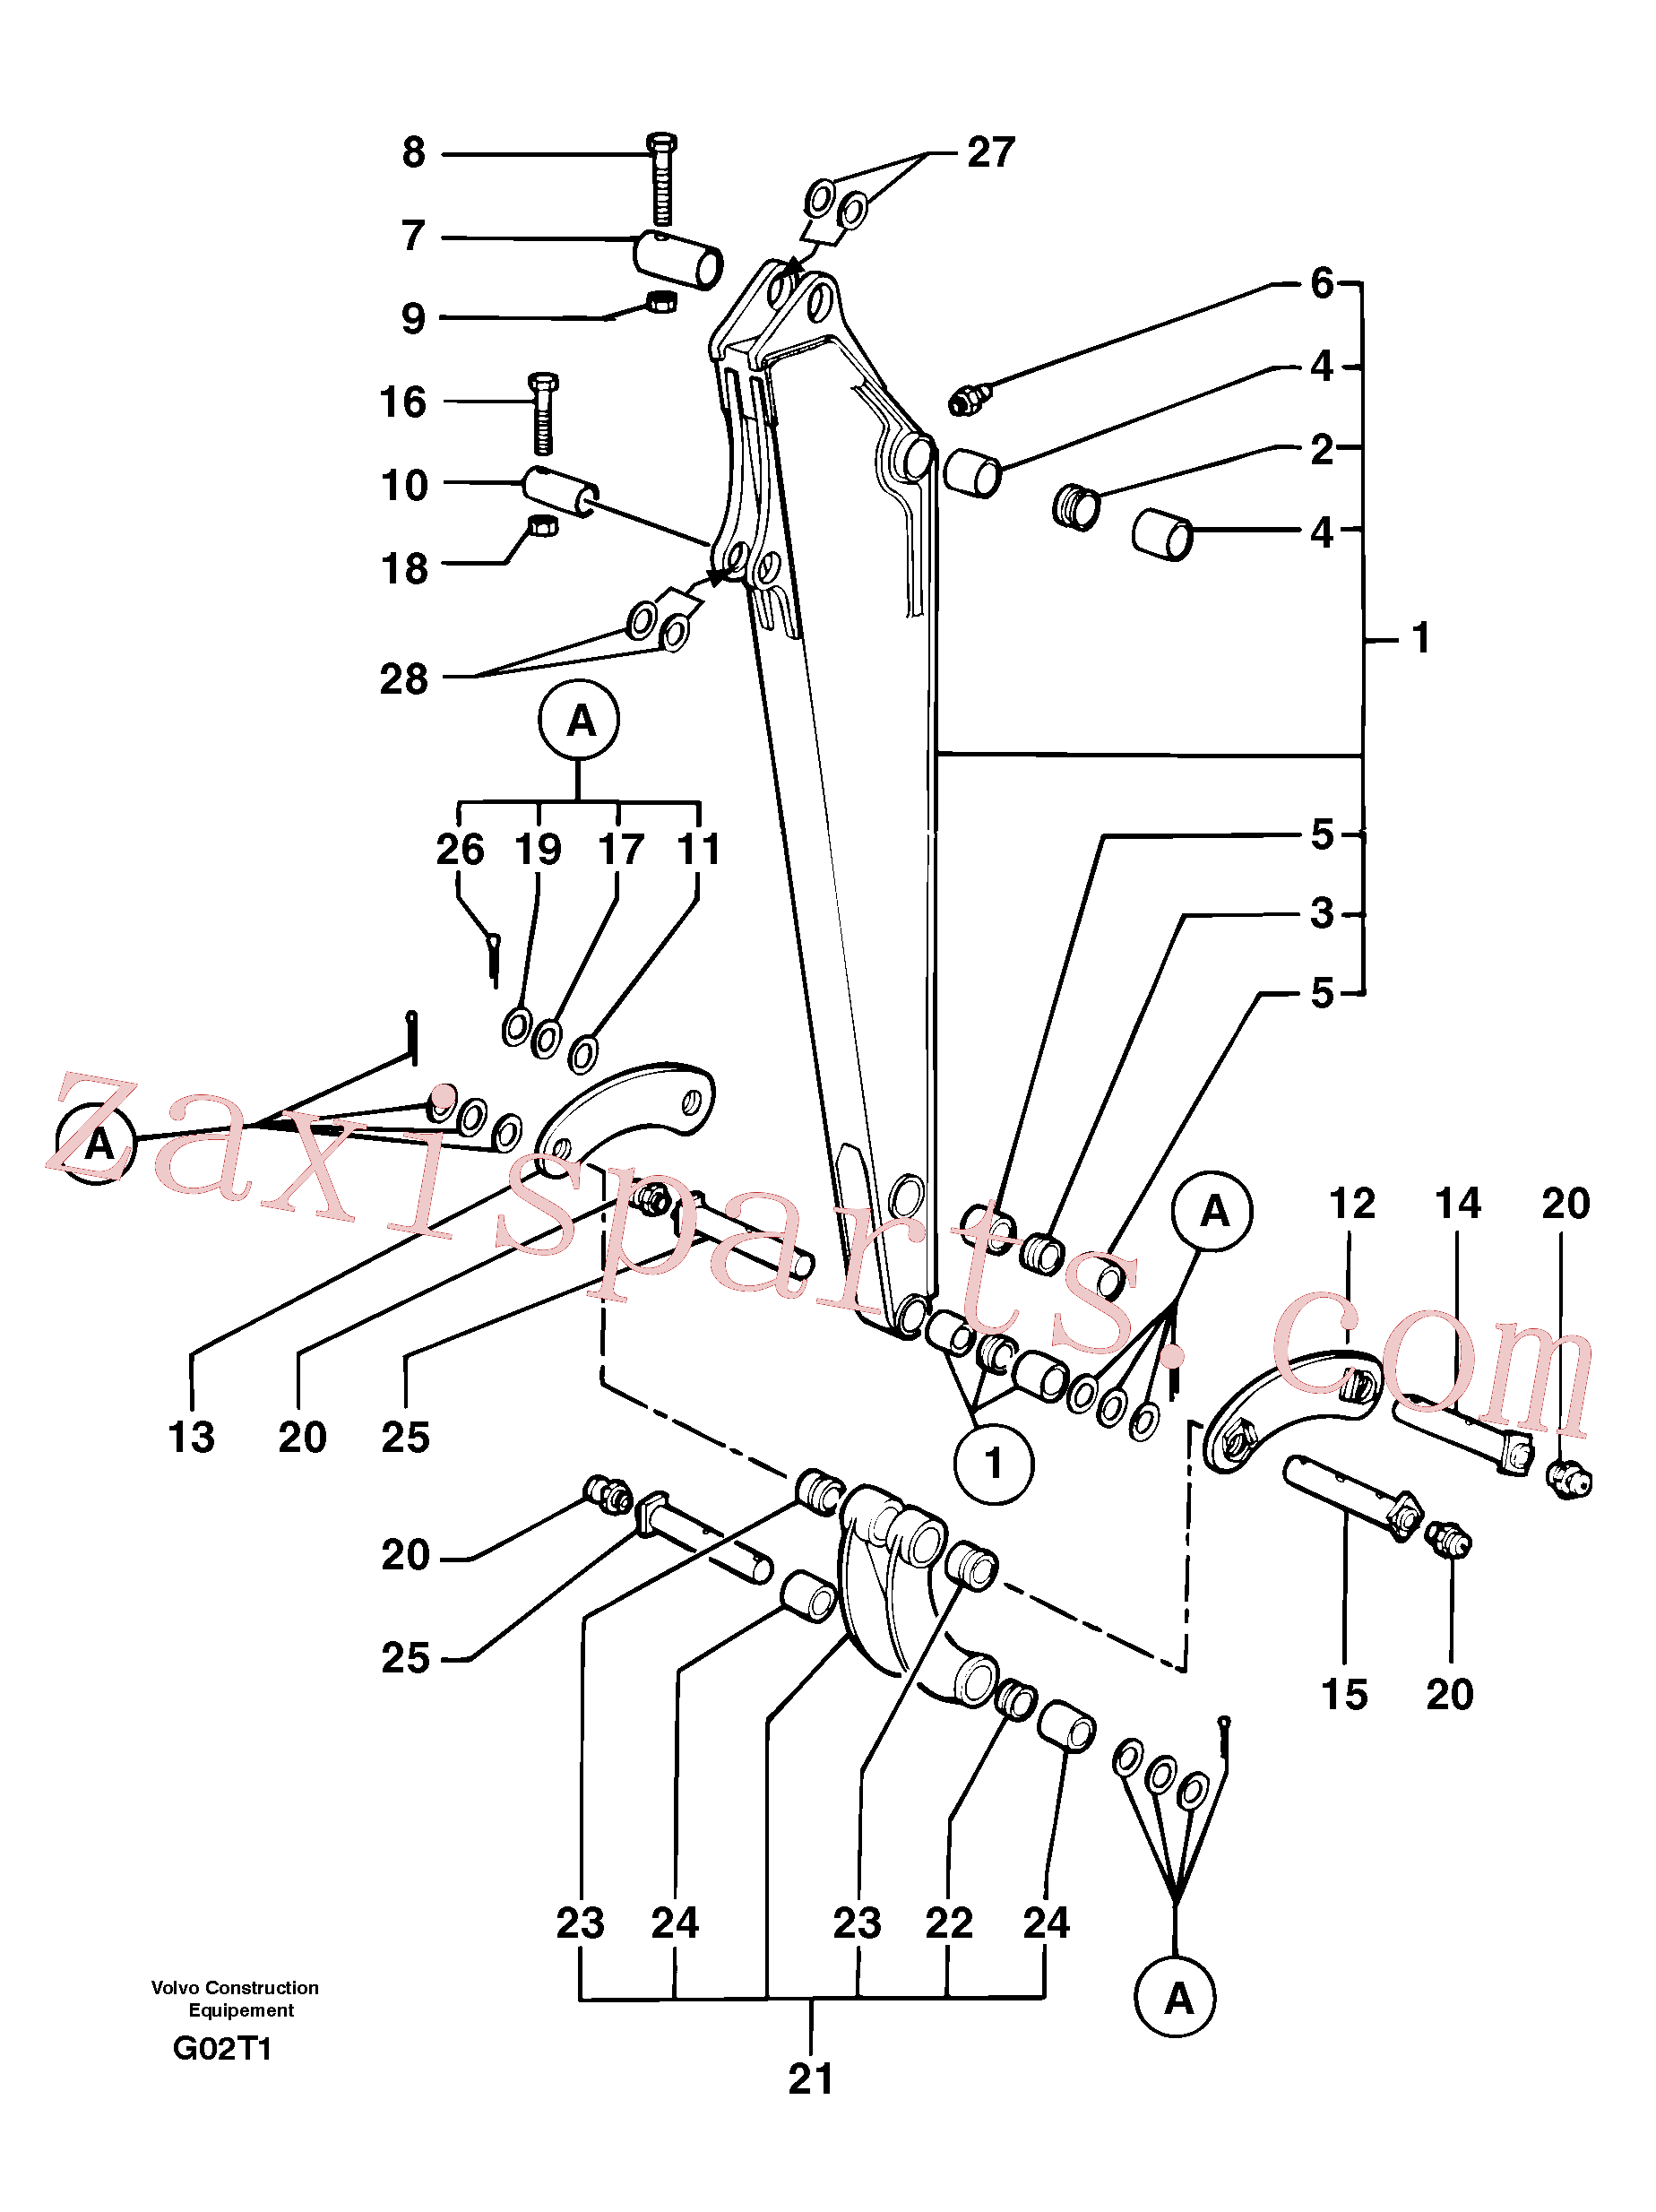 PJ5460189 for Volvo Dipper arm(G02T1 assembly)